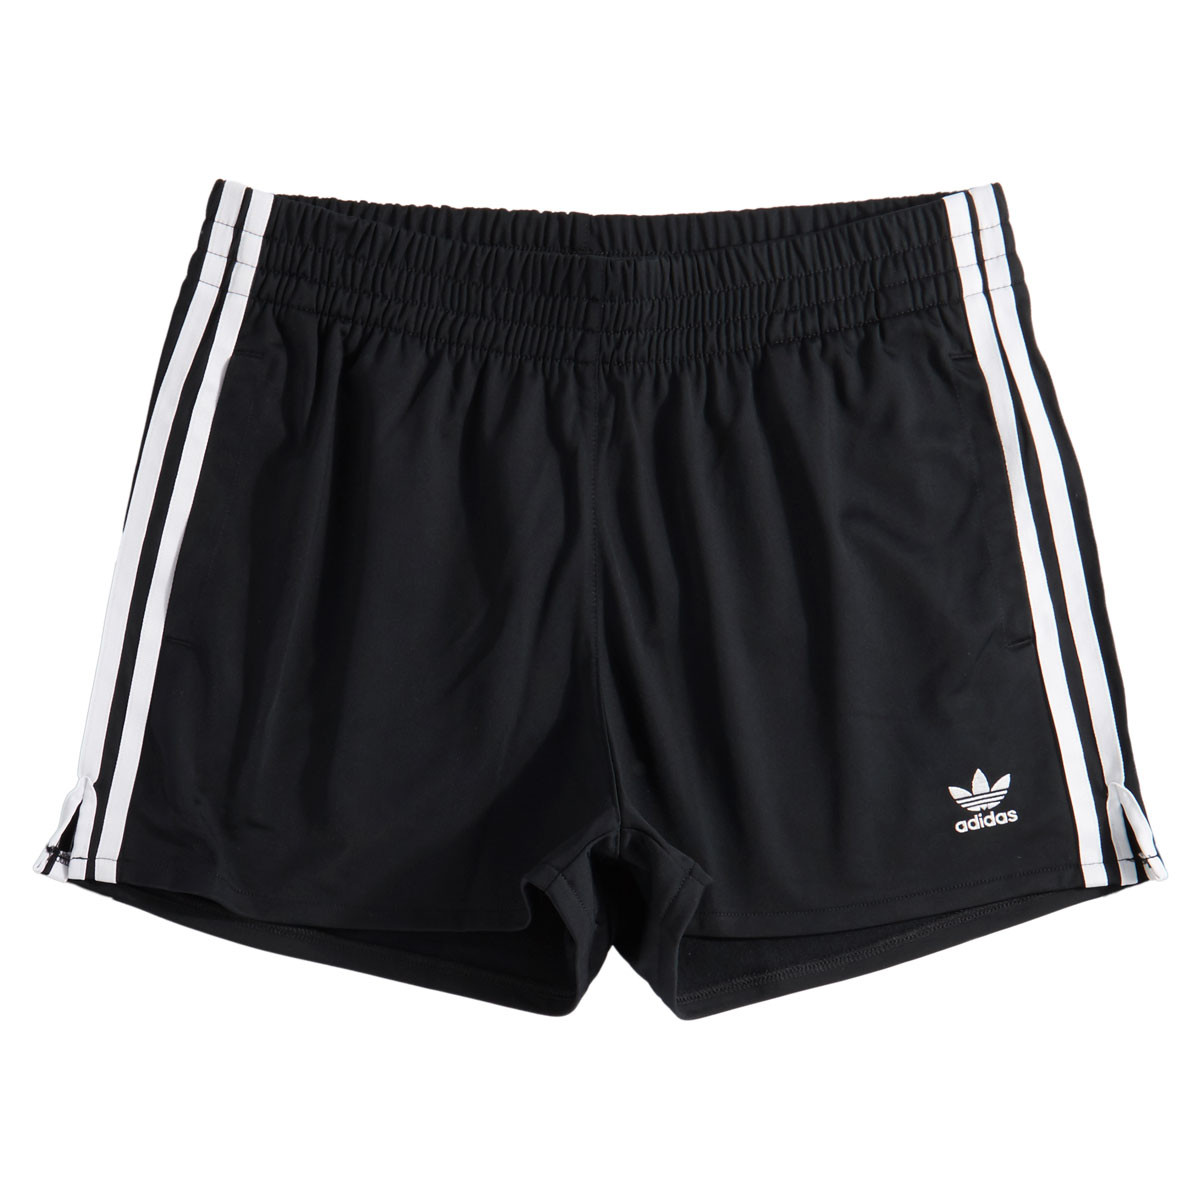 3 stripe adidas shorts